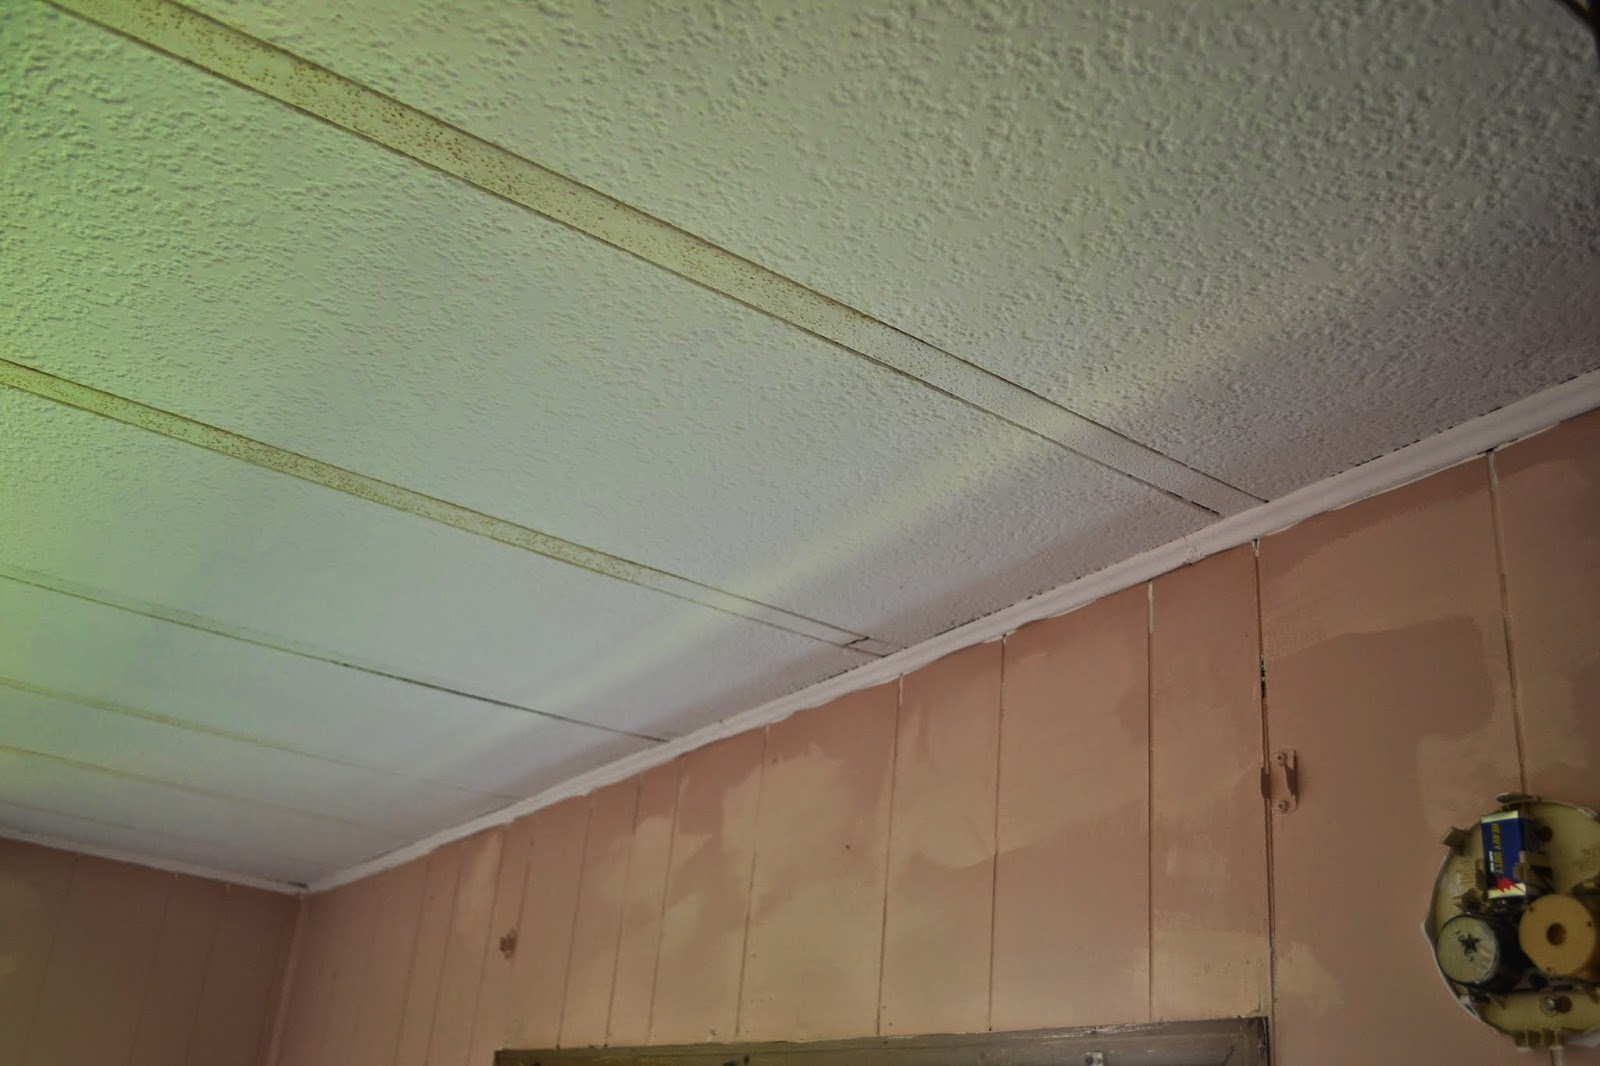 Home Ceiling Repair - Room Layout Design Ideas on mobile home exhaust fans, mobile home post lights, mobile home wall, mobile home skid light, mobile home accessories, mobile home curtains, mobile home outdoor, mobile home bollard lights, mobile home floor,